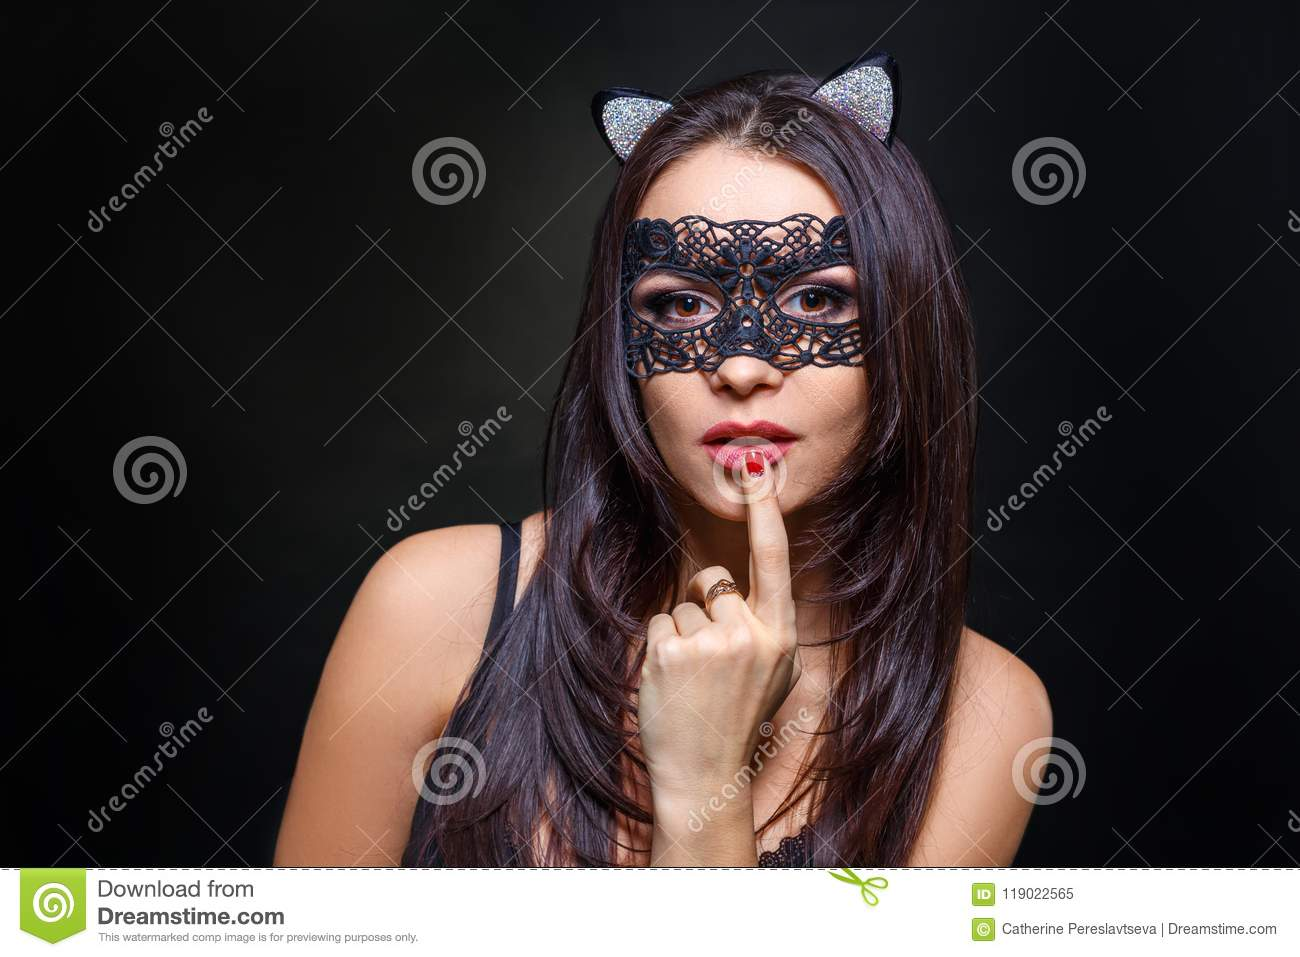 cd3d50b7587 Woman In Black Lingerie And Mask On Black Background Stock Image ...